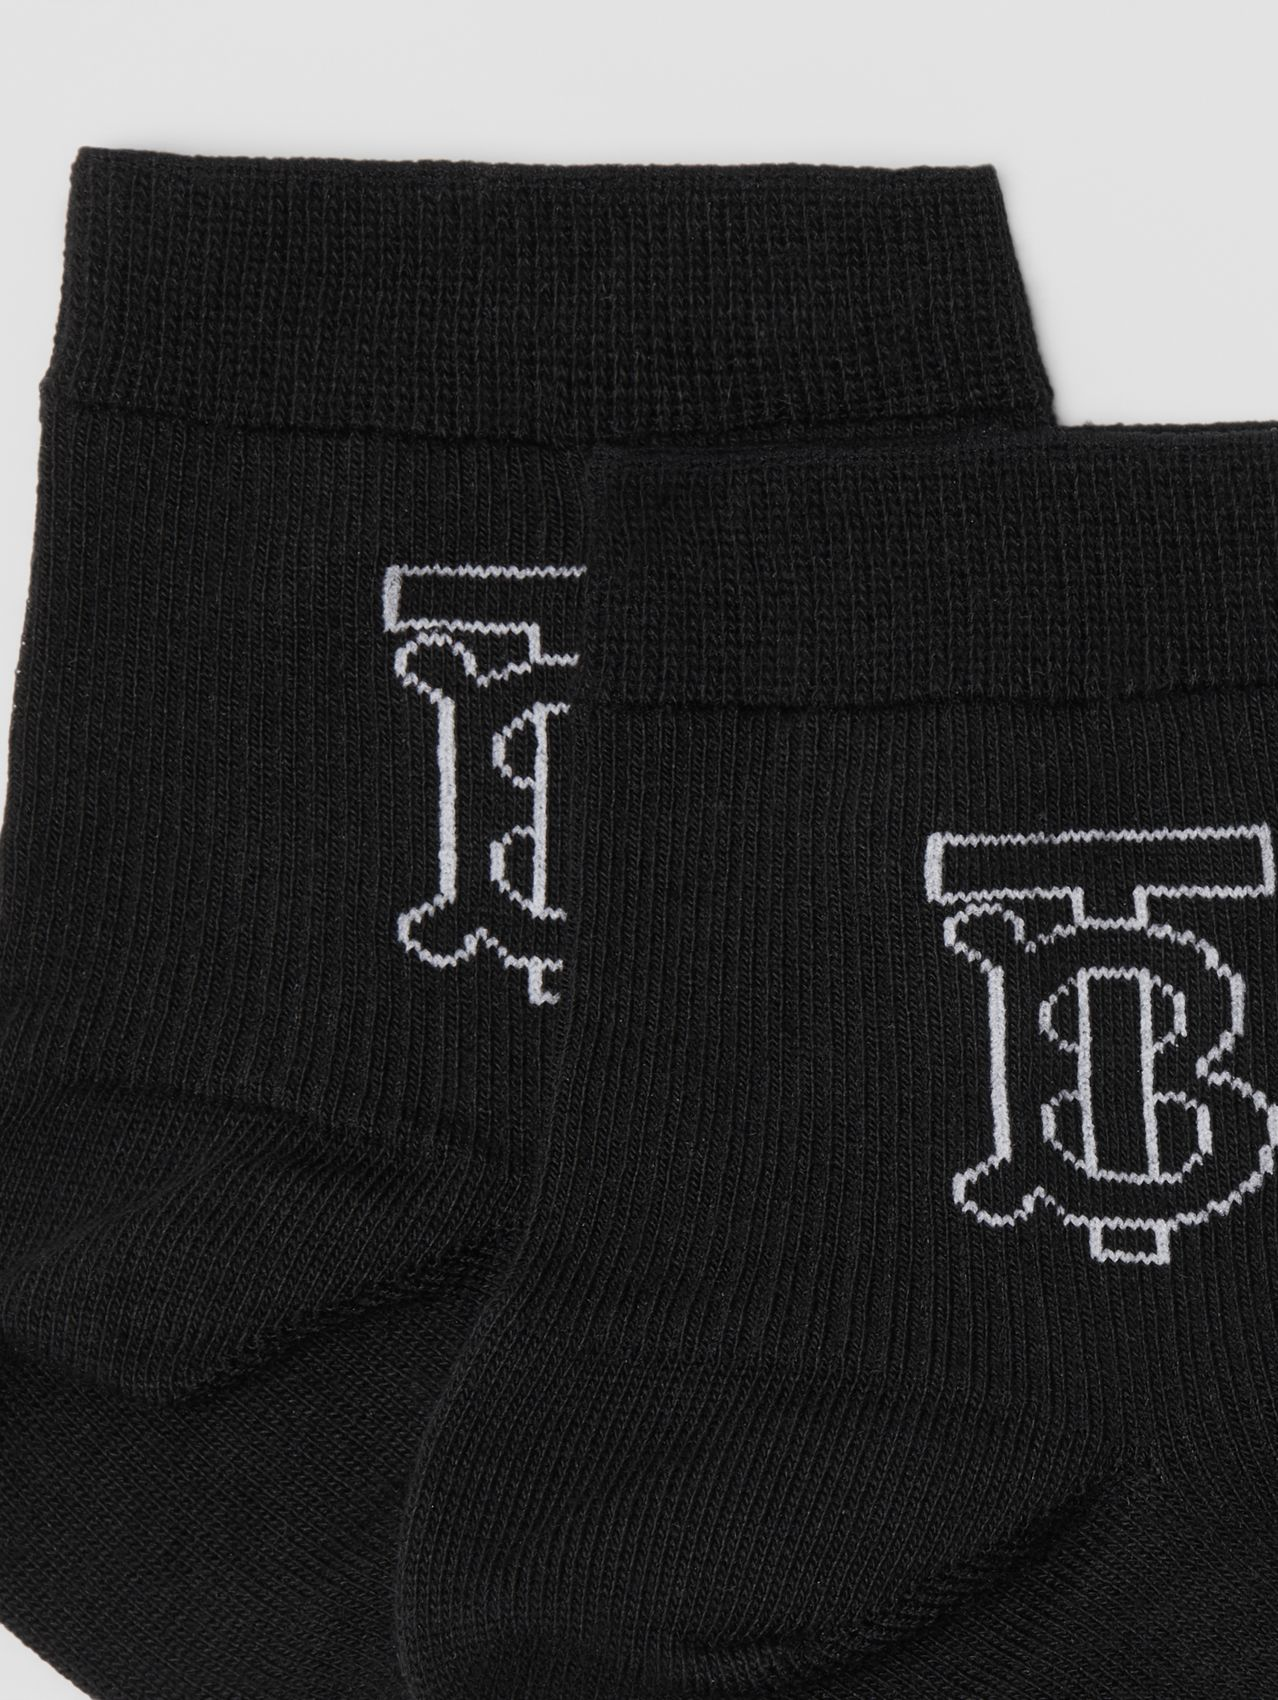 Monogram Intarsia Socks (Black)